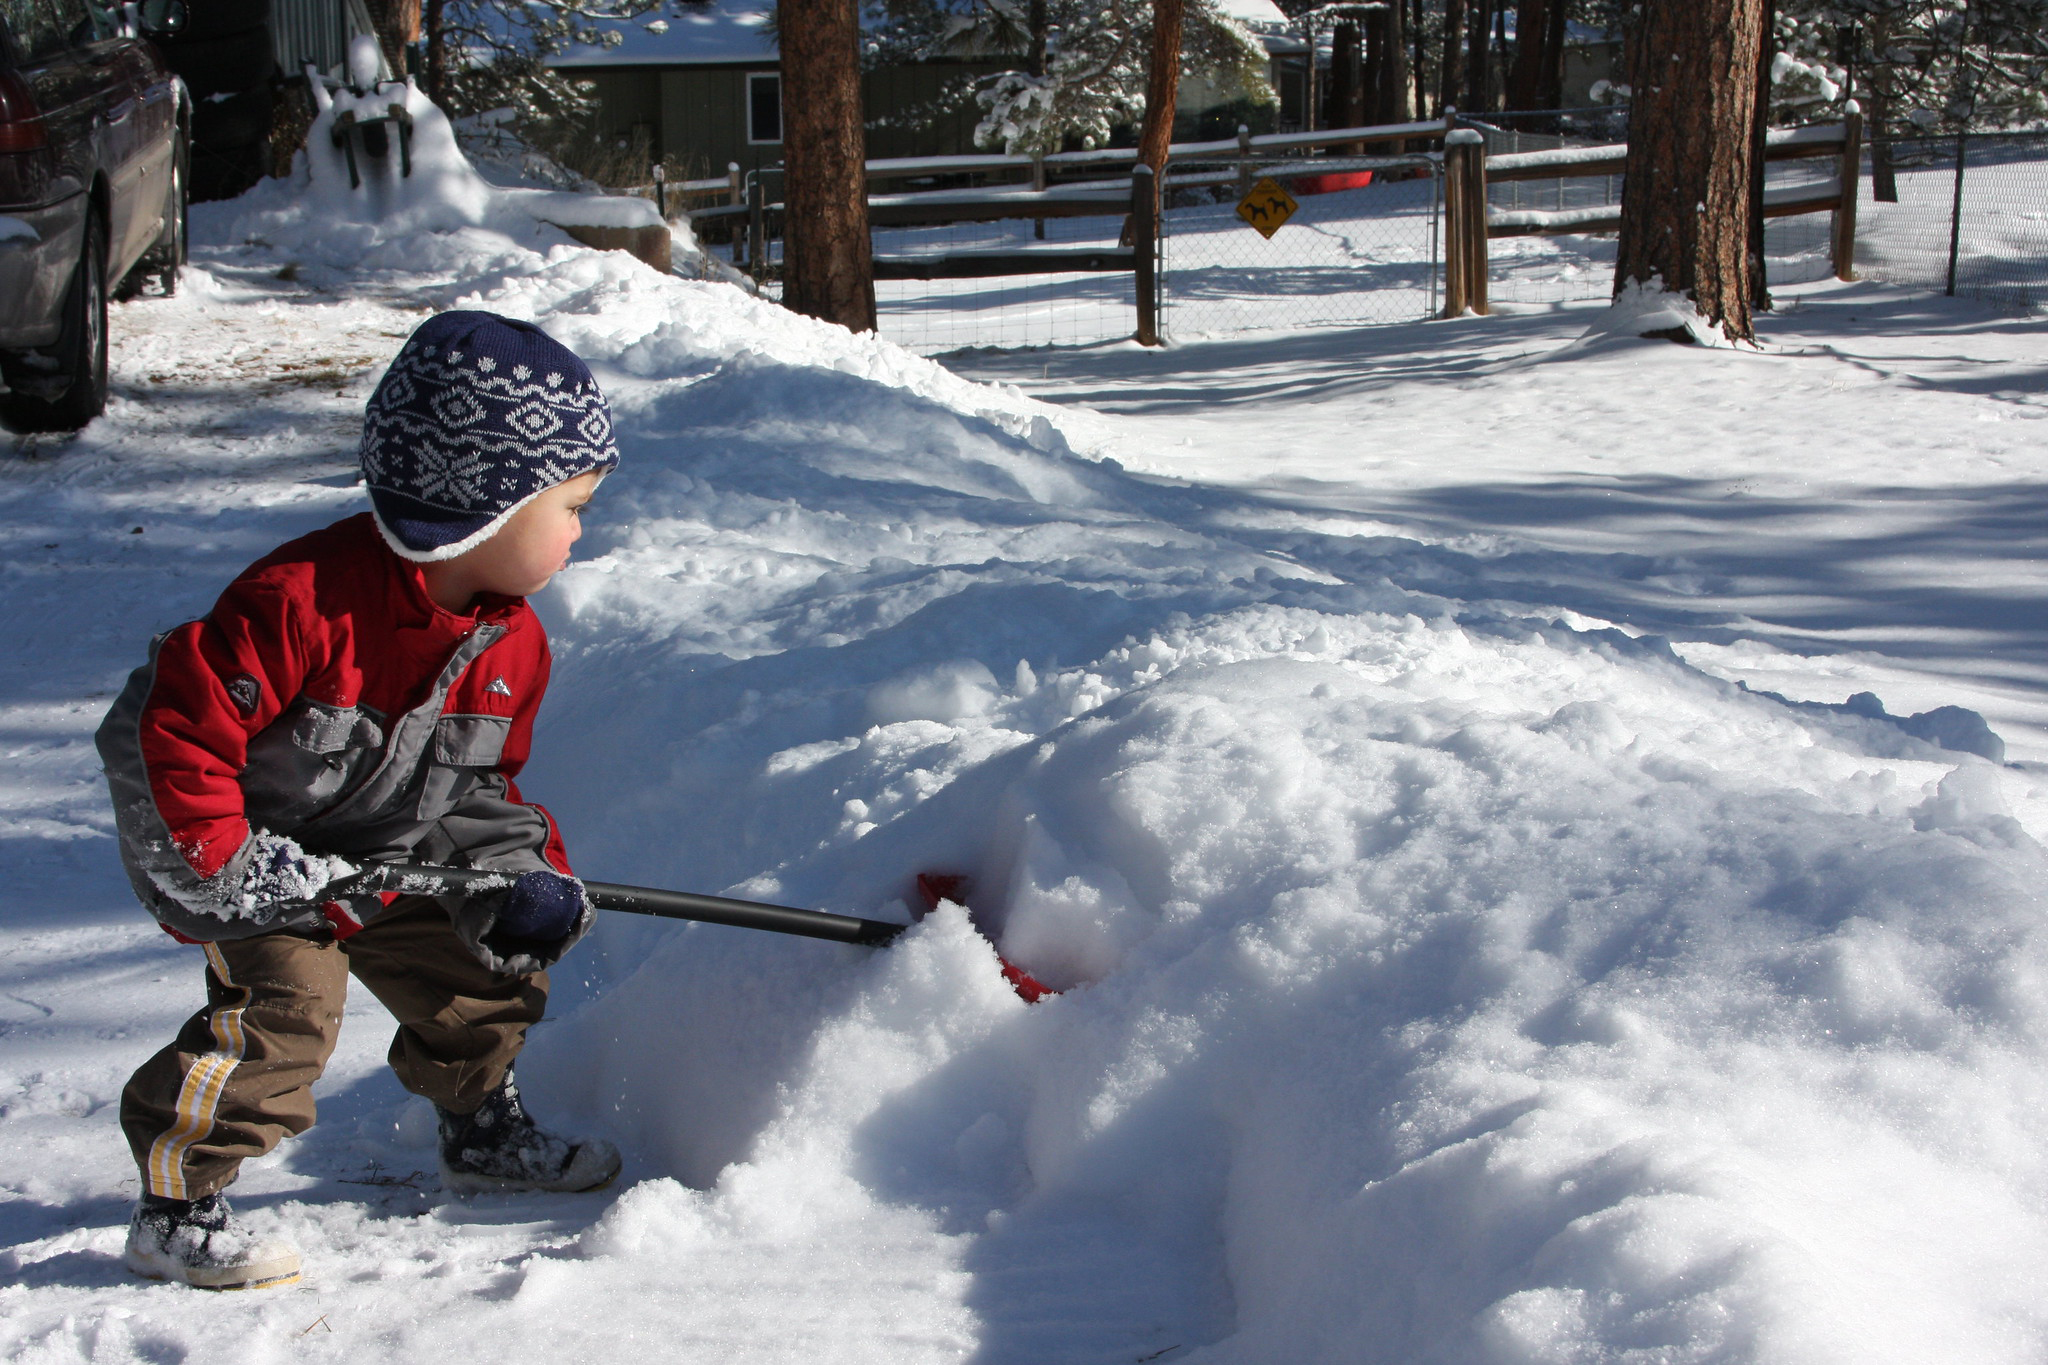 Kid shoveling snow